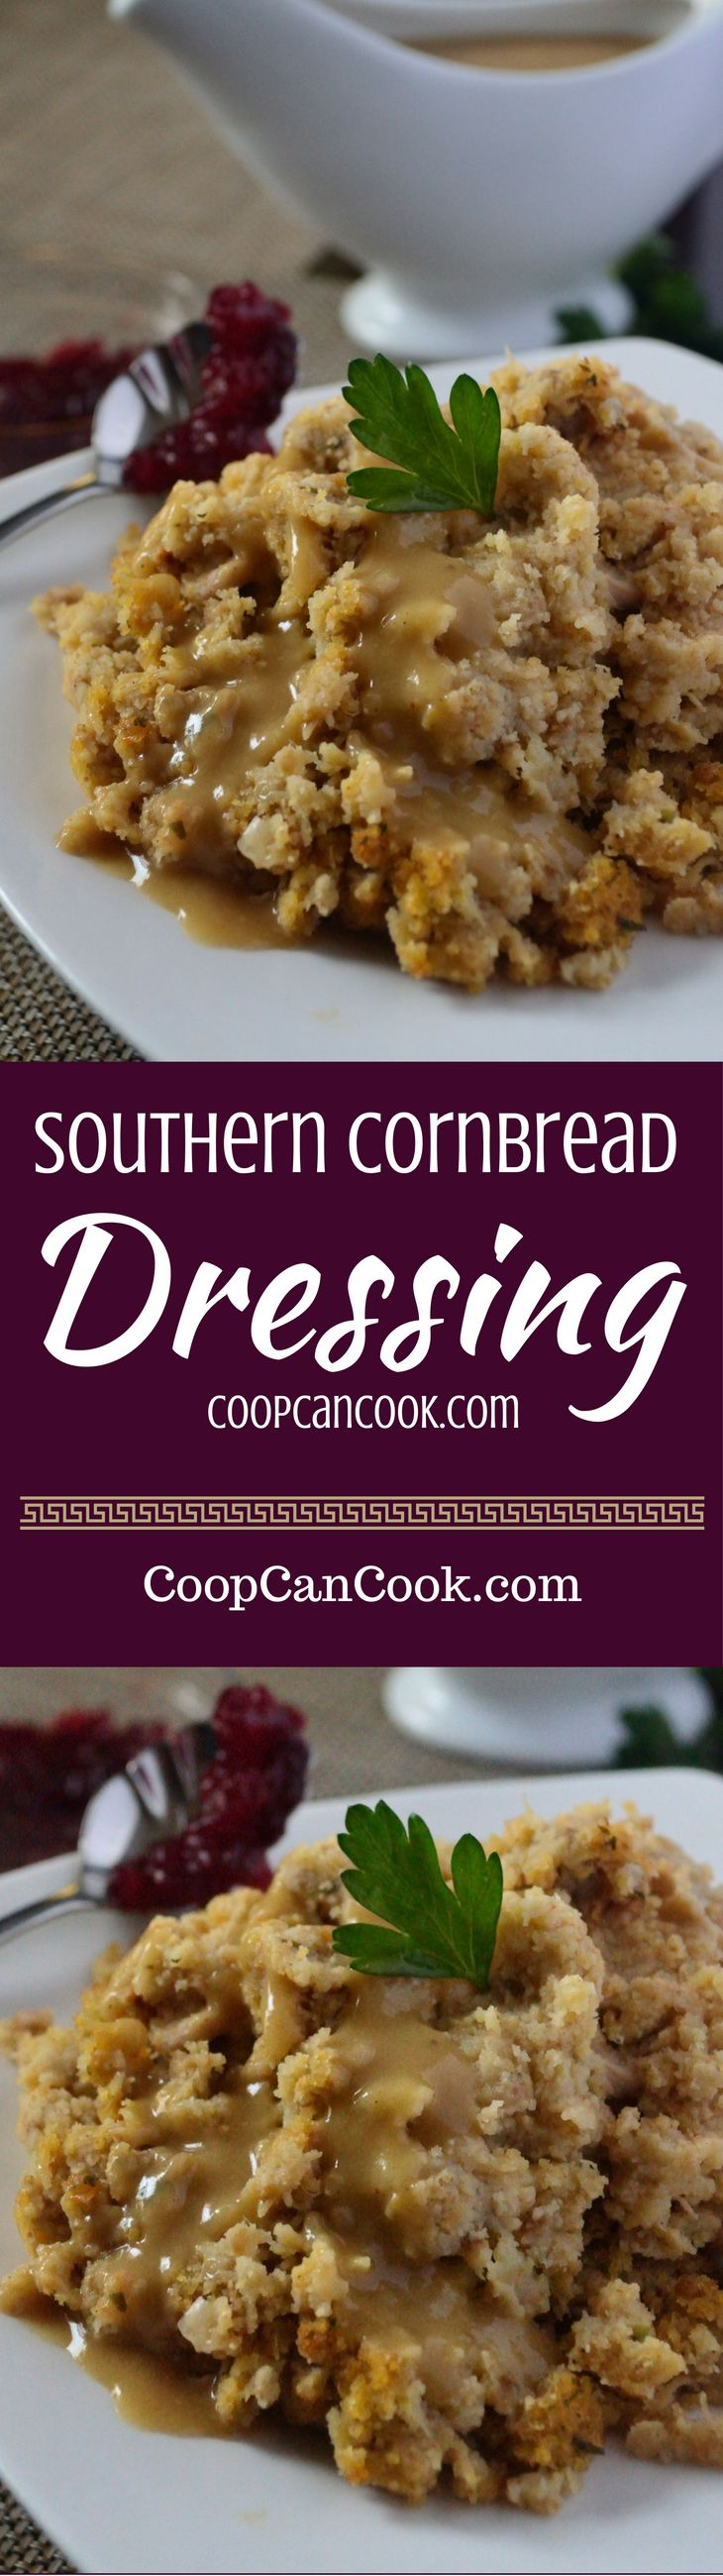 This is the Beyonce of Southern Cornbread Dressing recipes! Put your family's Love on Top this thanksgiving and bless the table with this Southern classic!